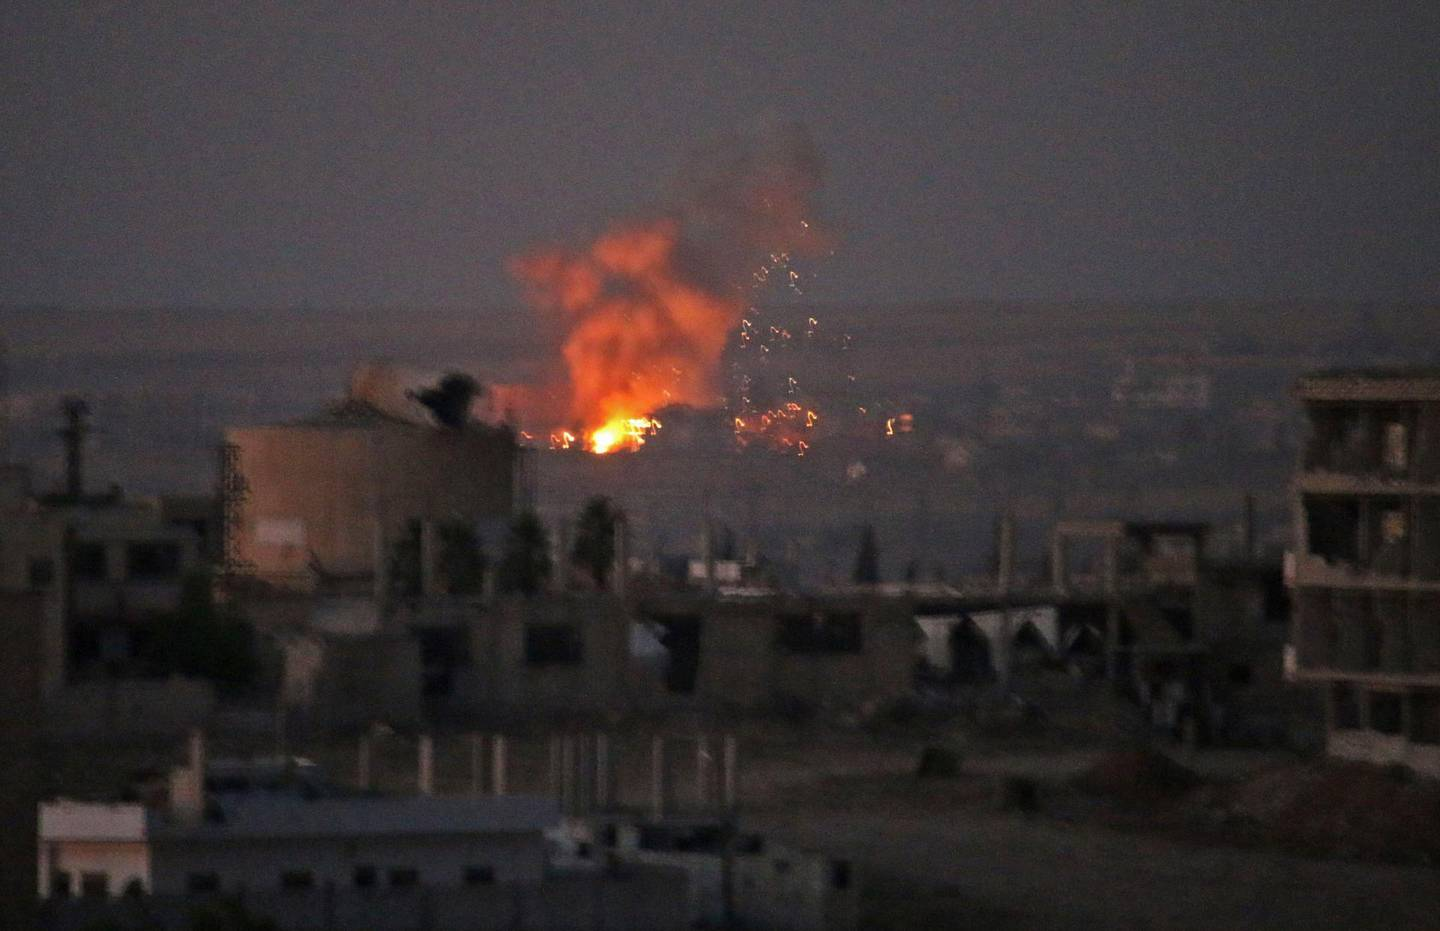 TOPSHOT - This picture shows an explosion in rebel-held areas of the city of Daraa during reported airstrikes by Syrian regime forces on July 5, 2018. Waves of air strikes pounded rebel-held areas of southern Syria after the failure a day earlier of Russian-brokered talks to end the offensive in Daraa province, which has killed dozens and forced tens of thousands from their homes. / AFP / MOHAMAD ABAZEED